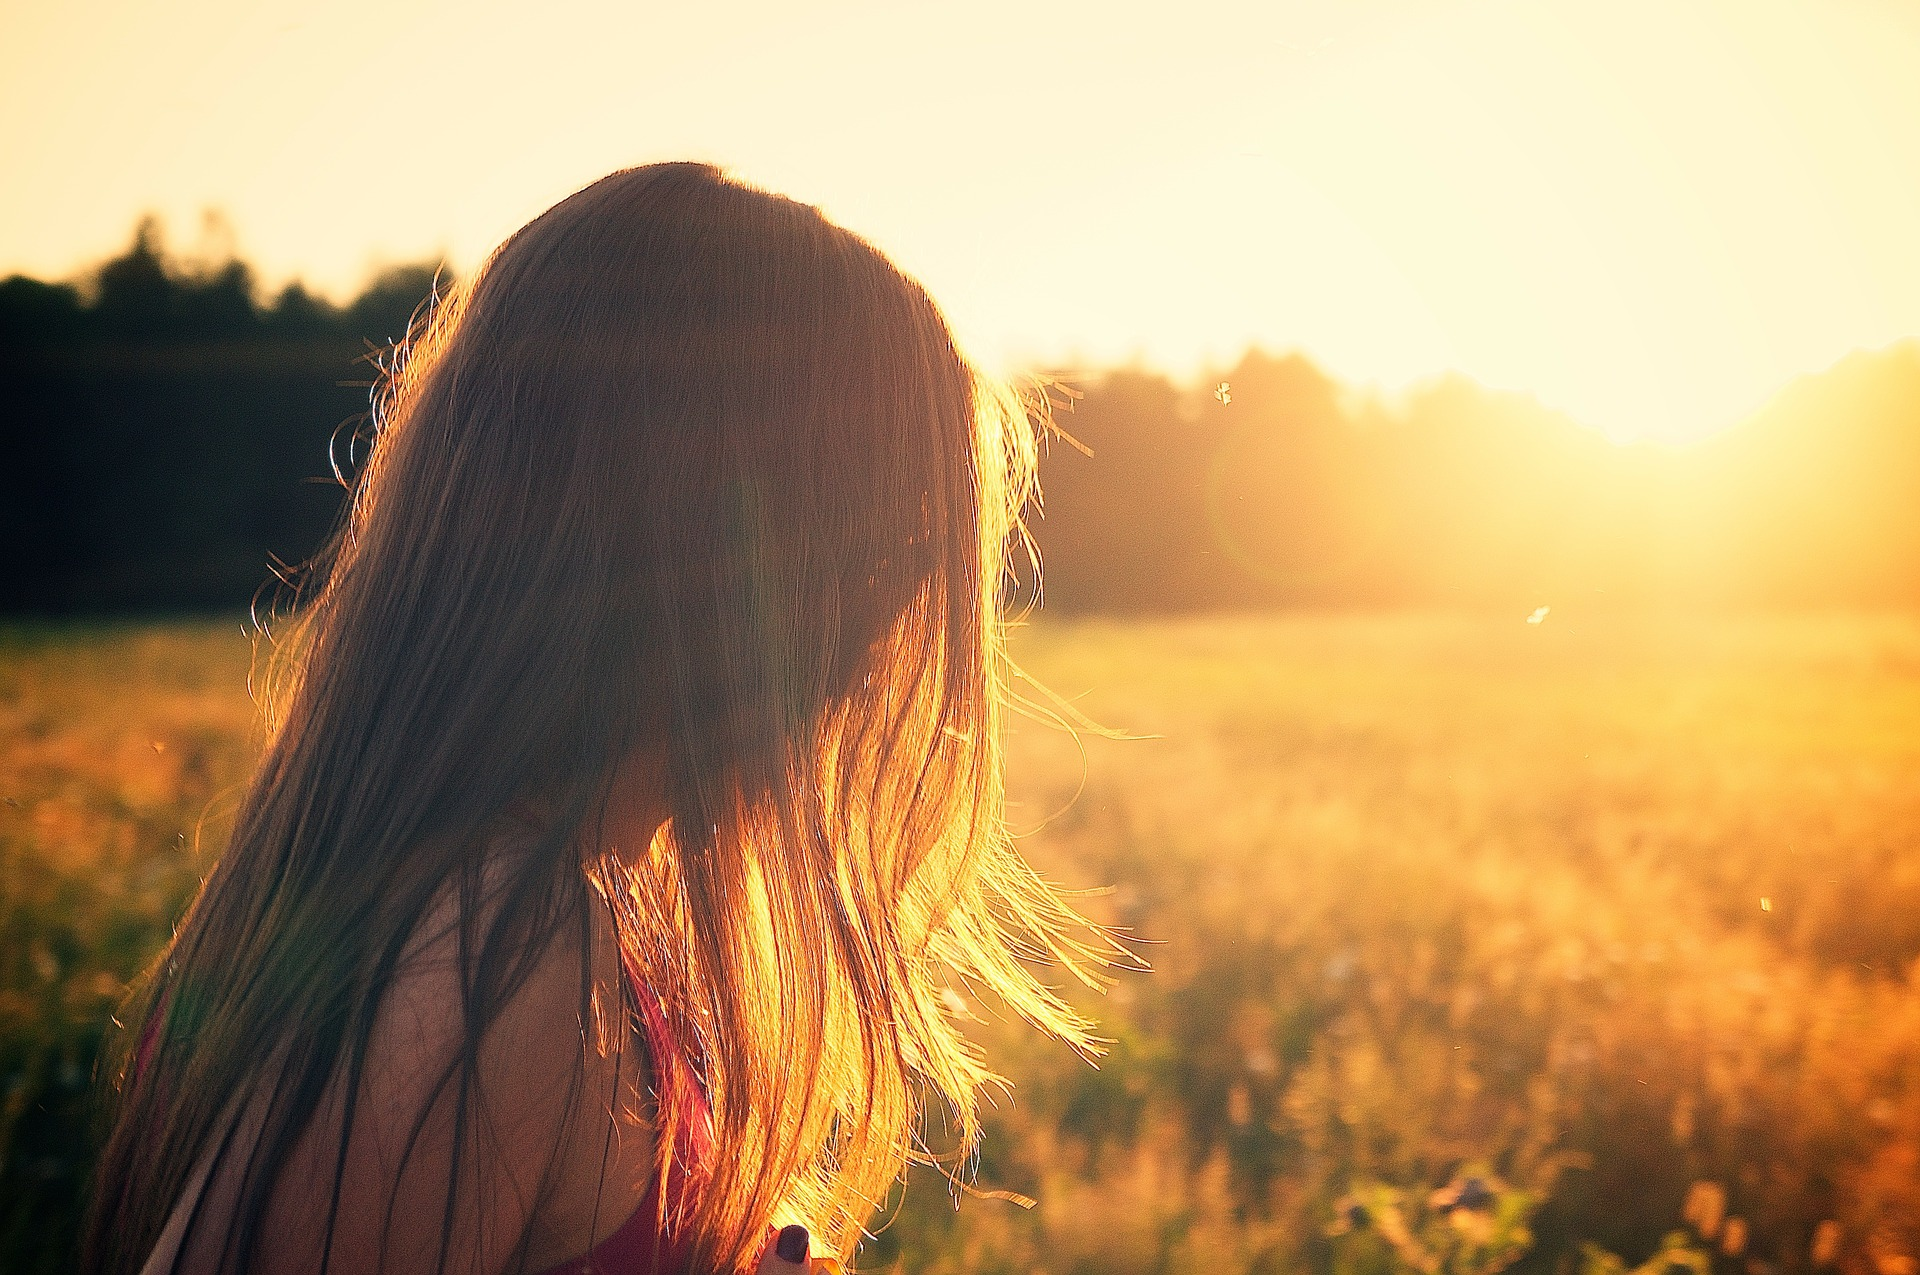 Girl in sunny field used for 6 Lessons Learned While Traveling